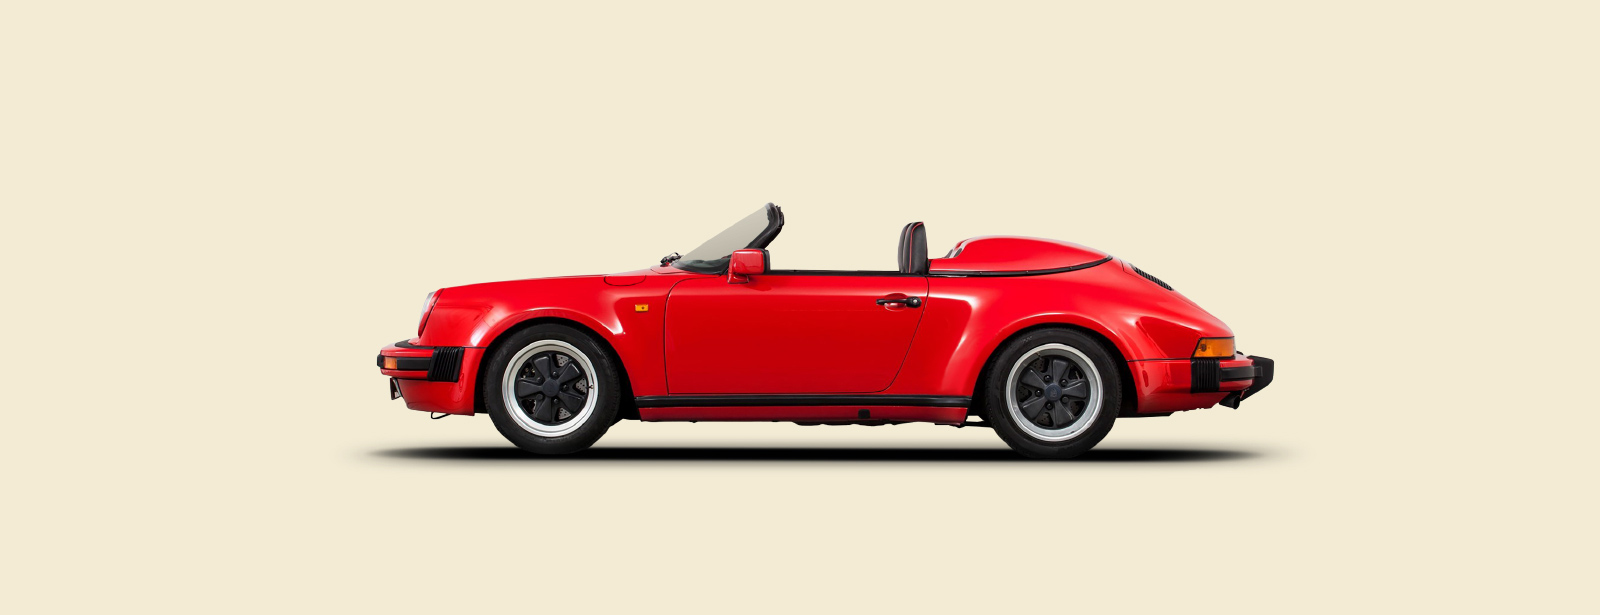 Porsche 911/G Narrow Body Speedster. - 1988/1989